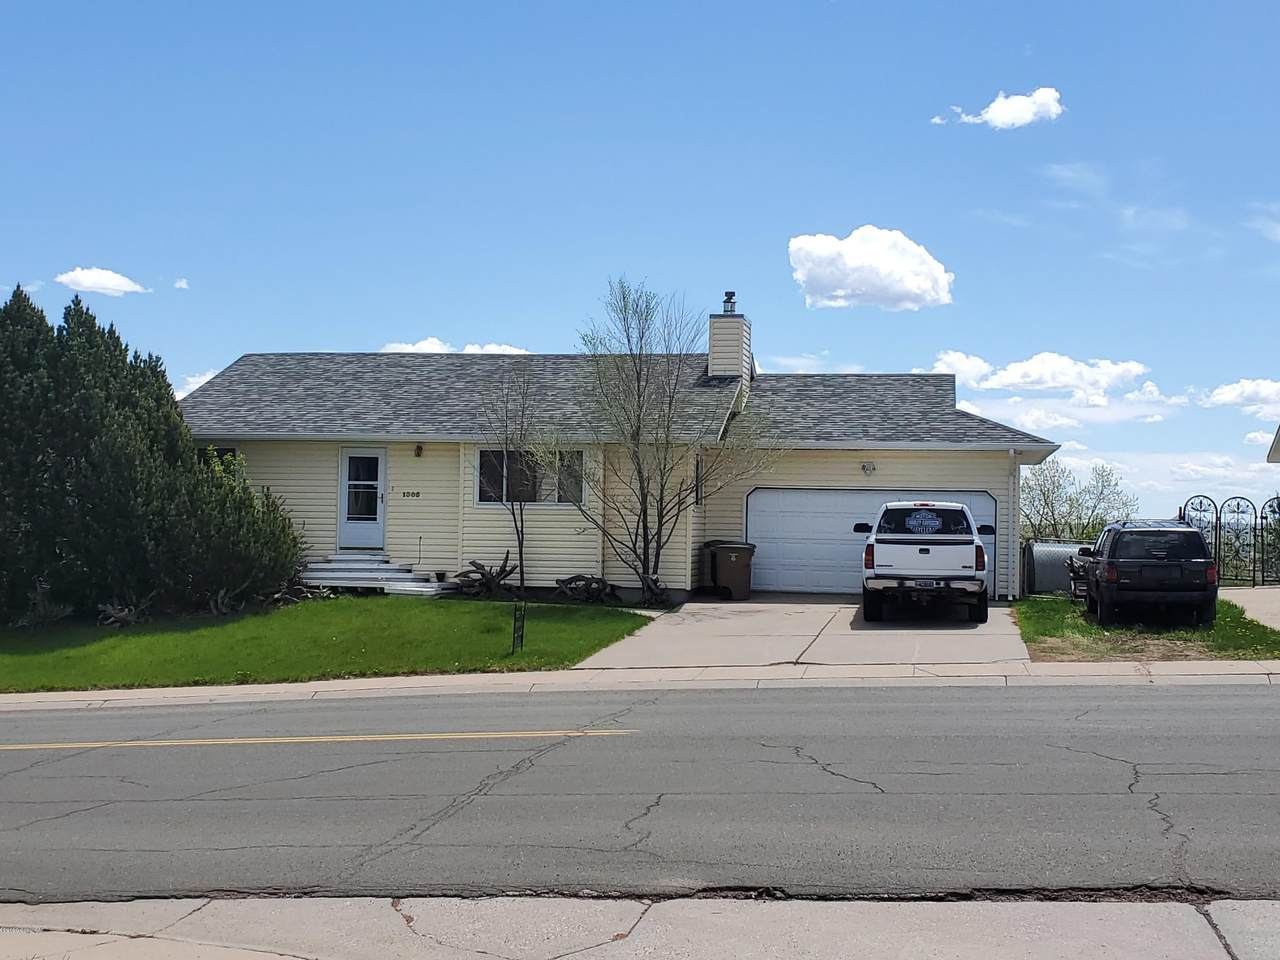 1305 Overdale Dr - Photo 1